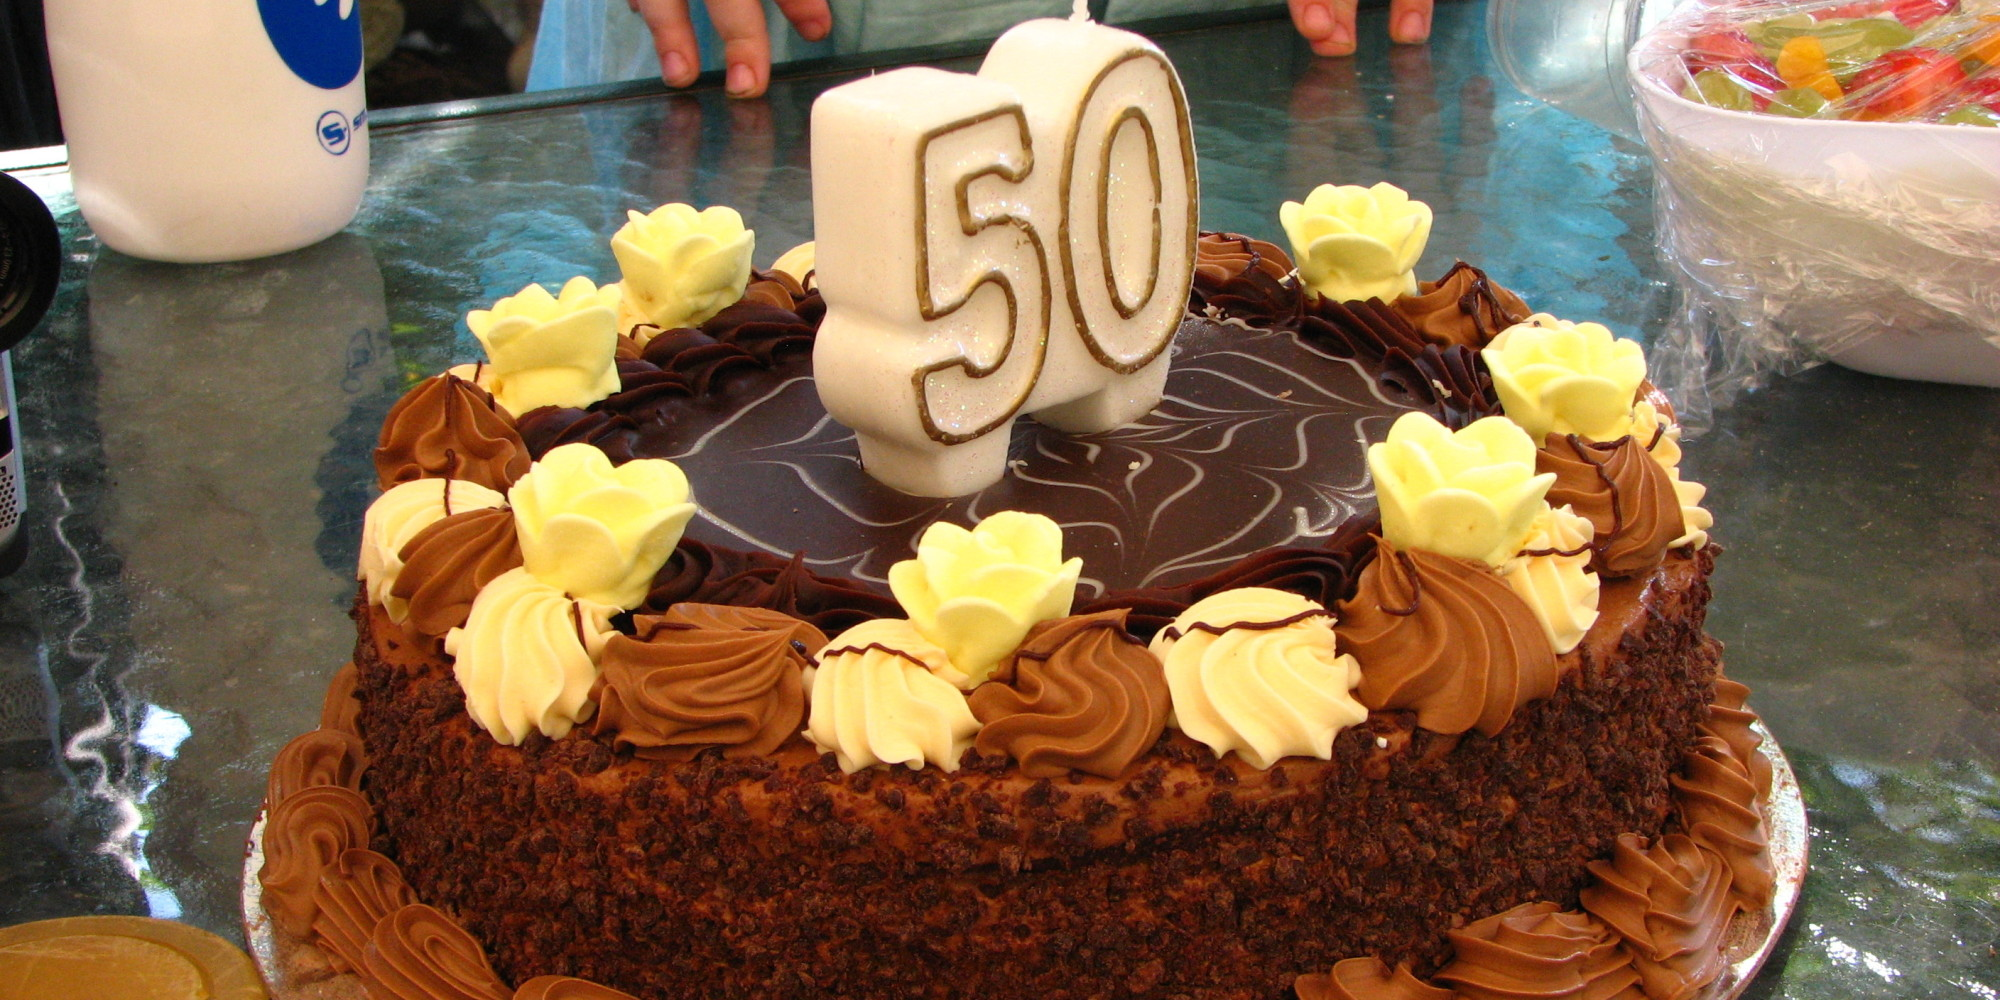 Birthday Cake For 50 Year Old Man Image Inspiration of Cake and